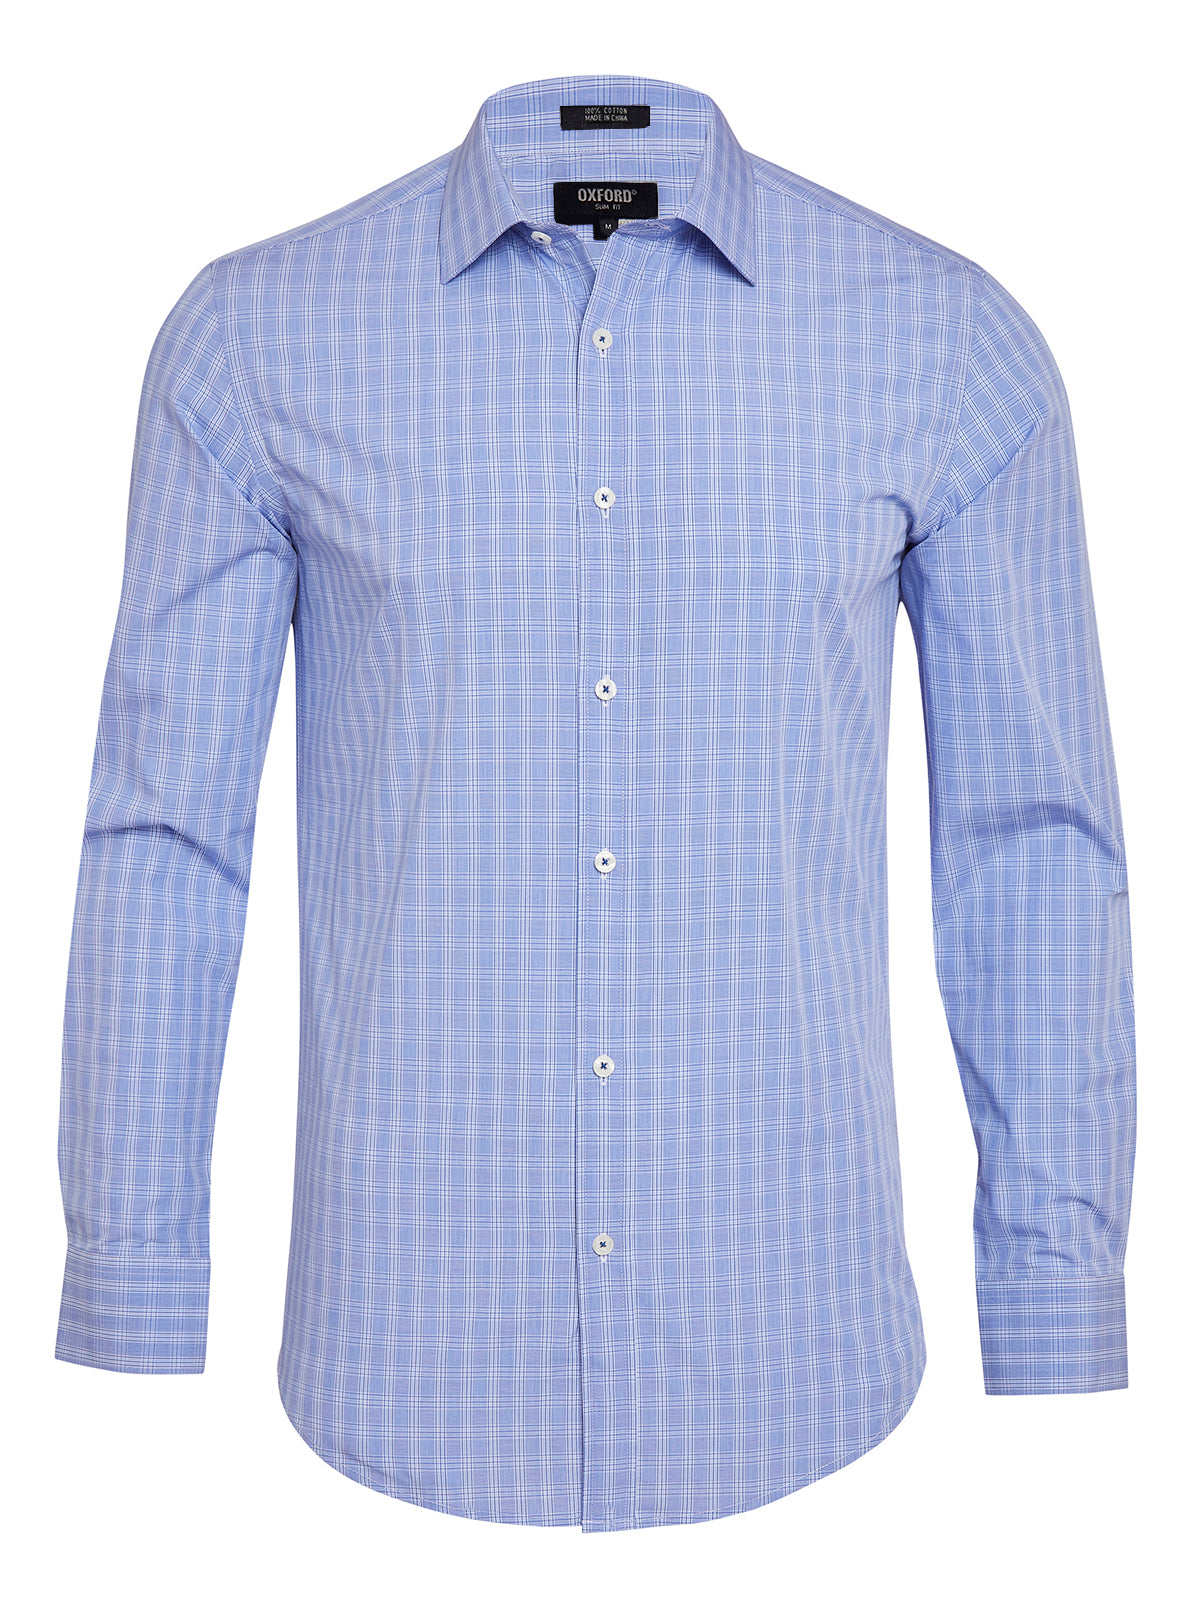 BECKTON CHECKED SHIRT BLUE/NAVY